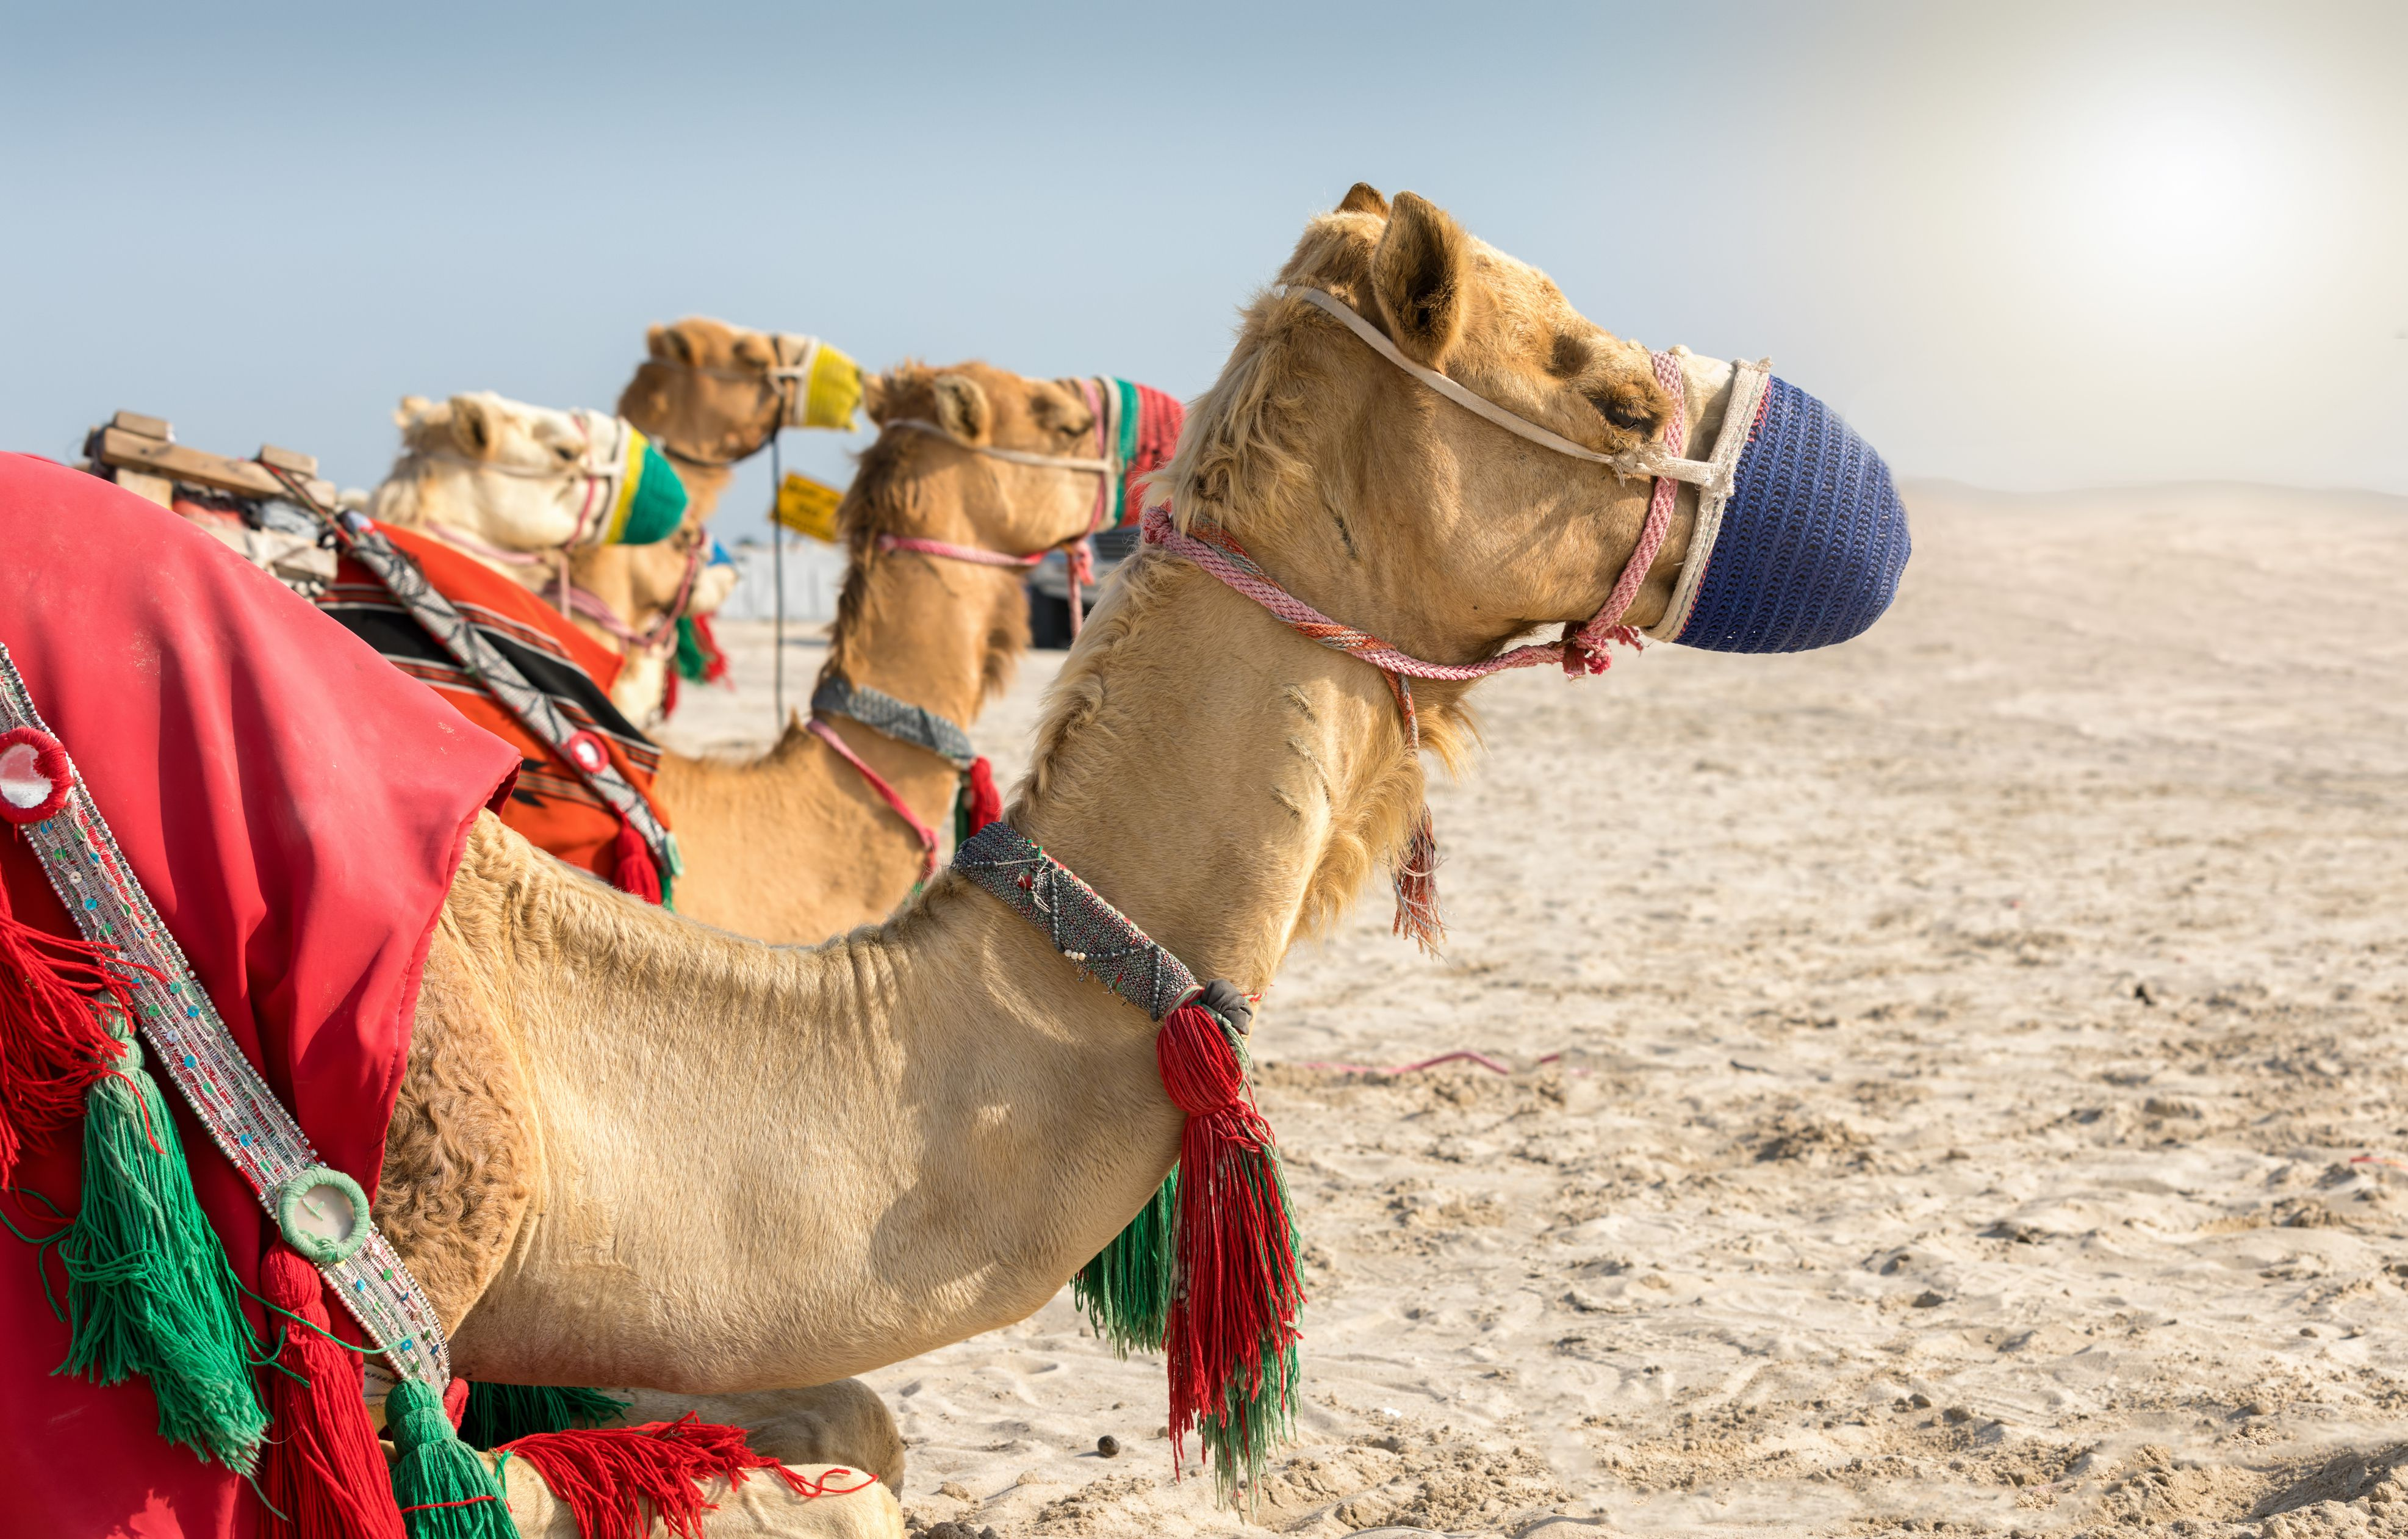 Side View of Camels in Desert.